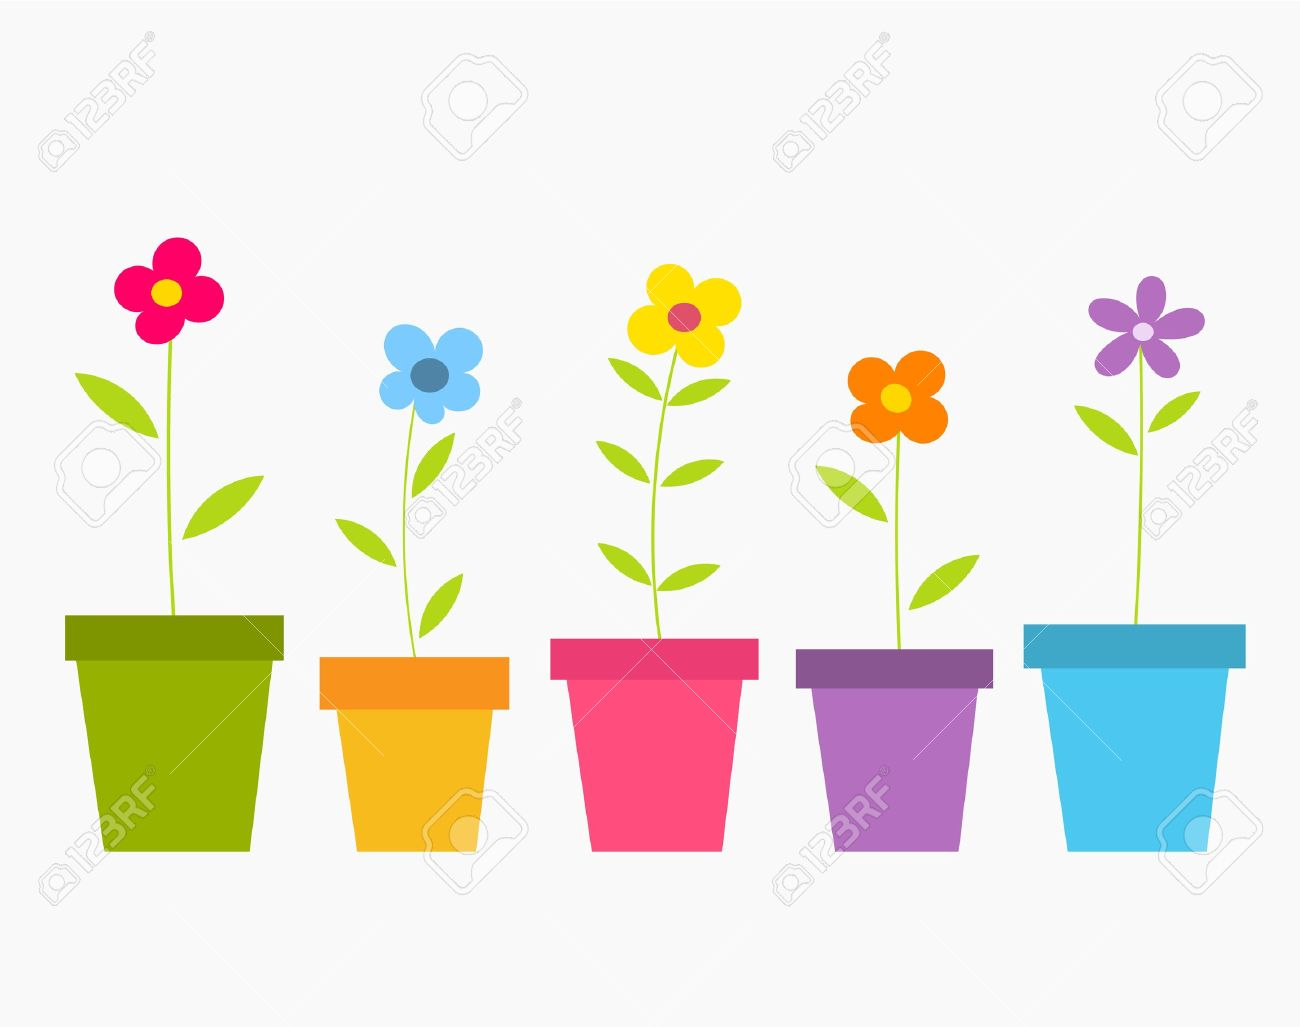 Spring Töpfe Cute Spring Bunte Blumen In Töpfen Vector Illustration